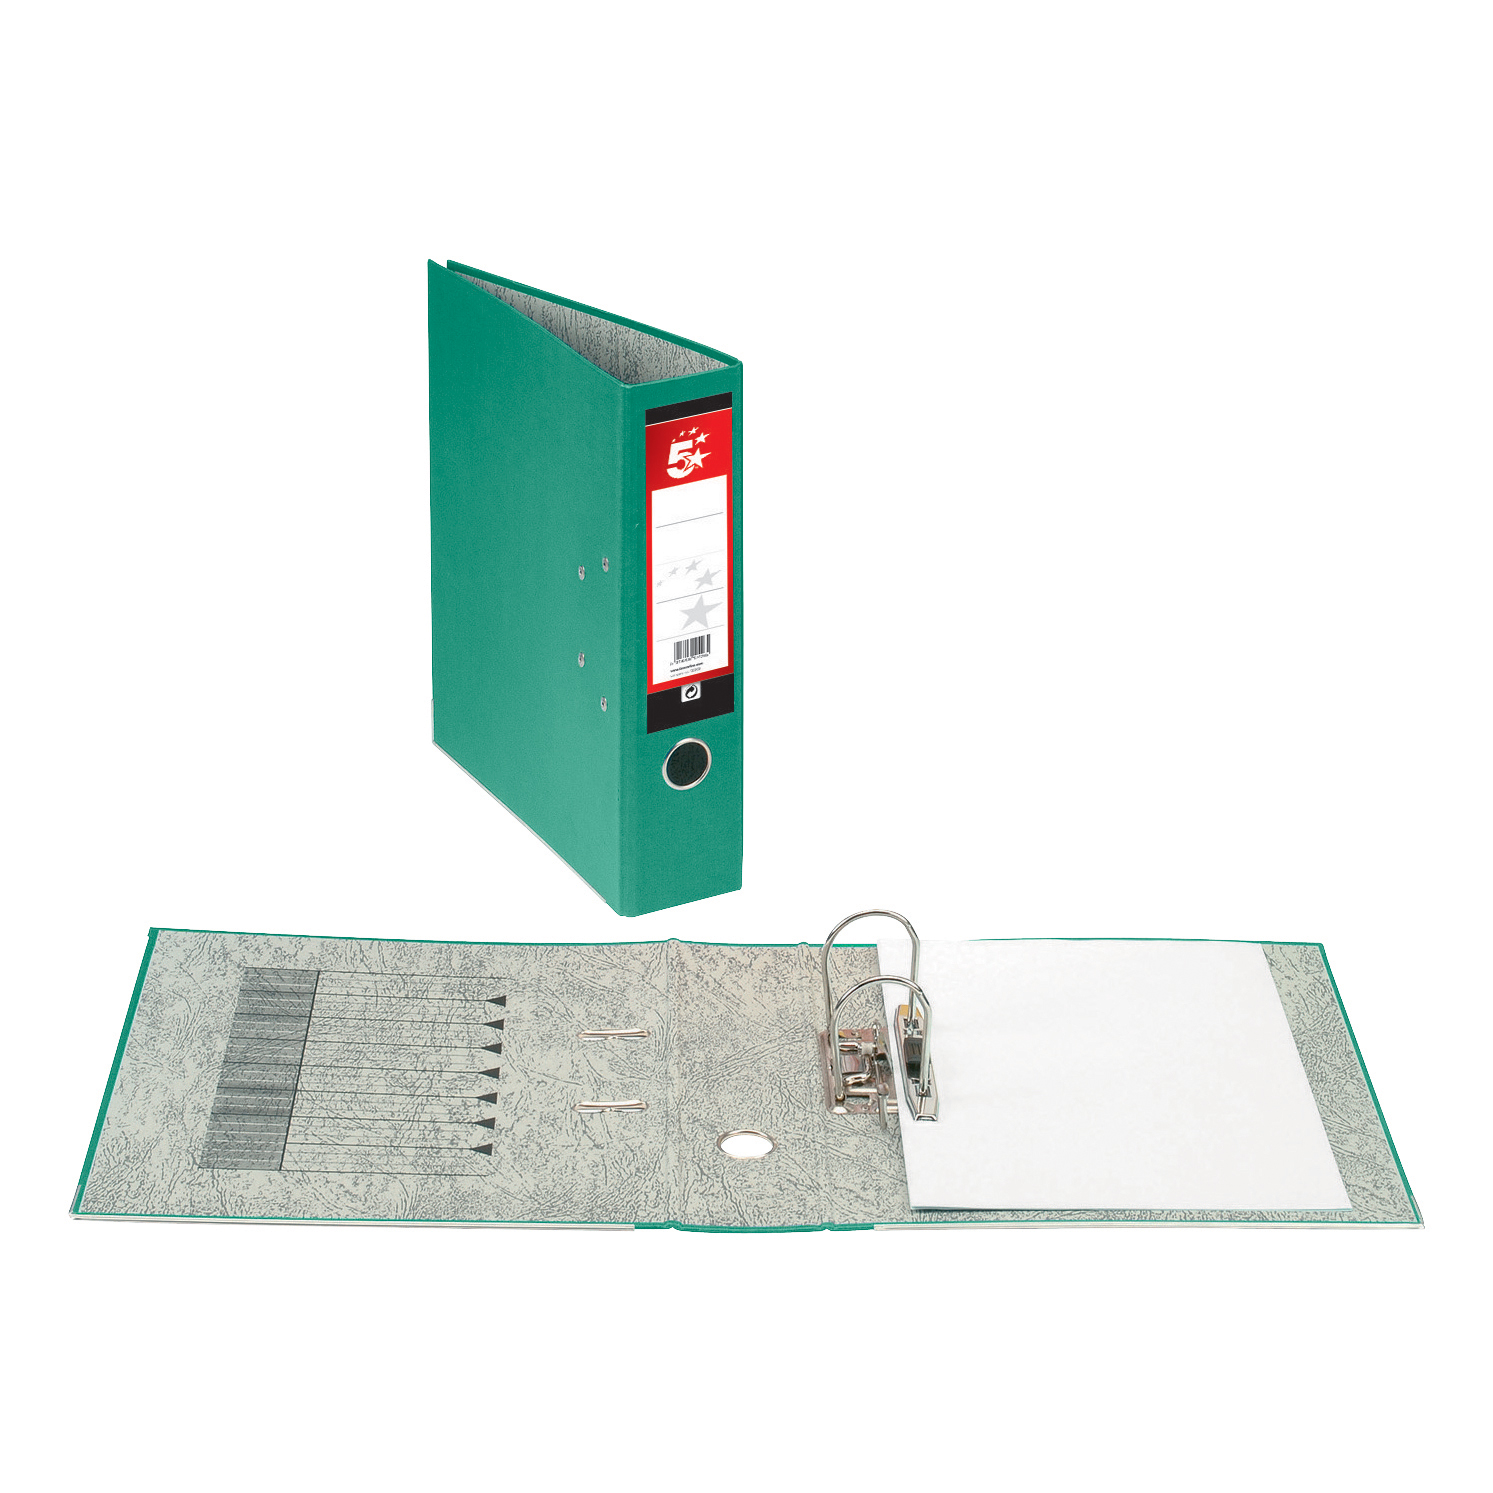 5 Star Office Lever Arch File 70mm A4 Green